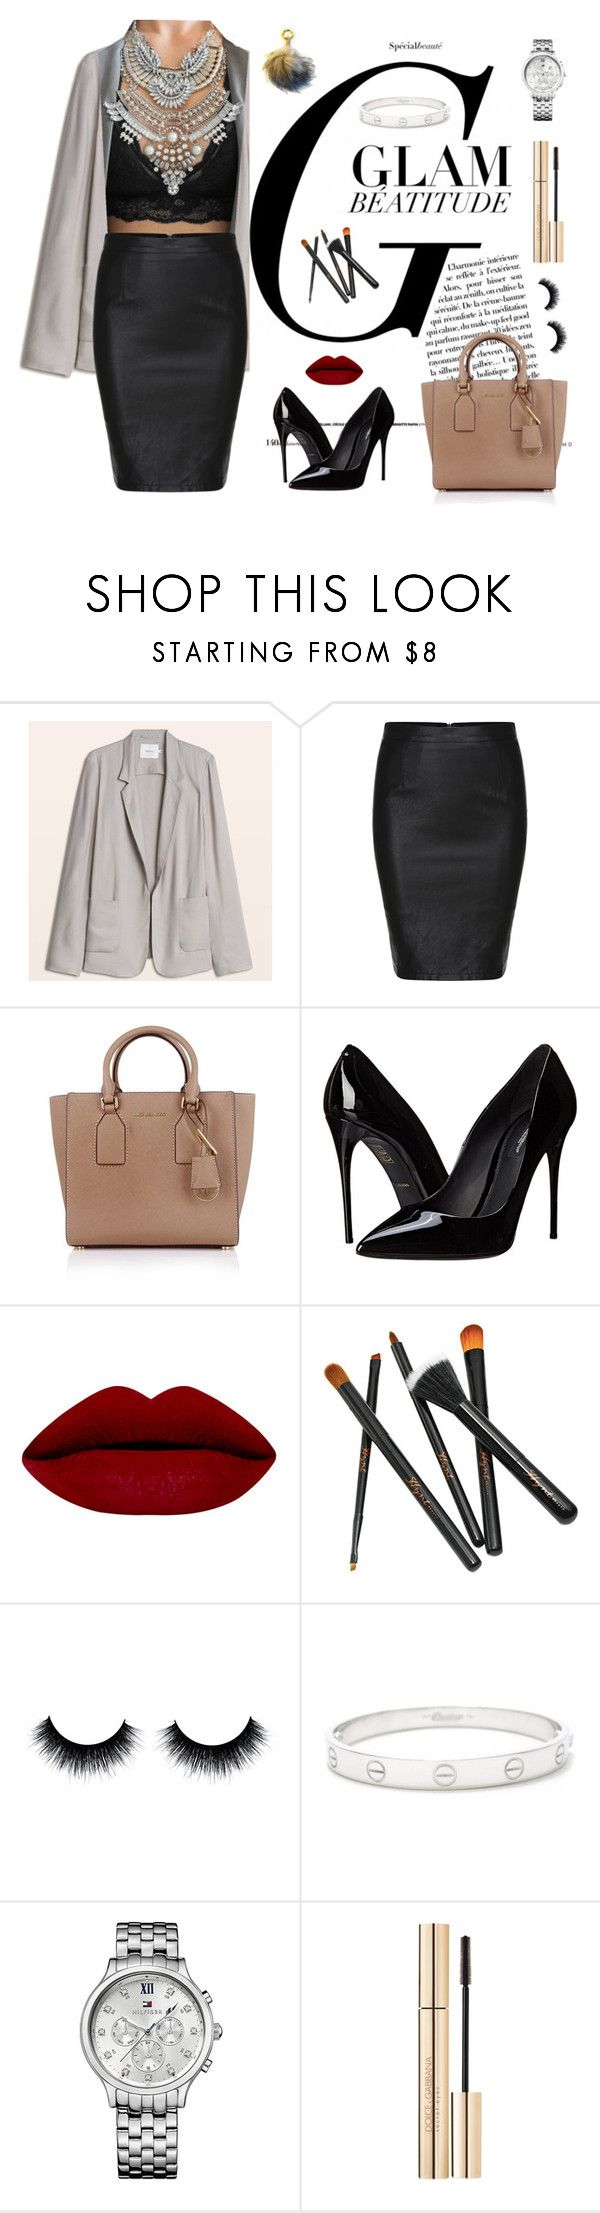 """Business glam including two of my own products from styleloft.dk"" by shop-styleloft on Polyvore featuring Michael Kors, Dolce&Gabbana, Cartier and Tommy Hilfiger"